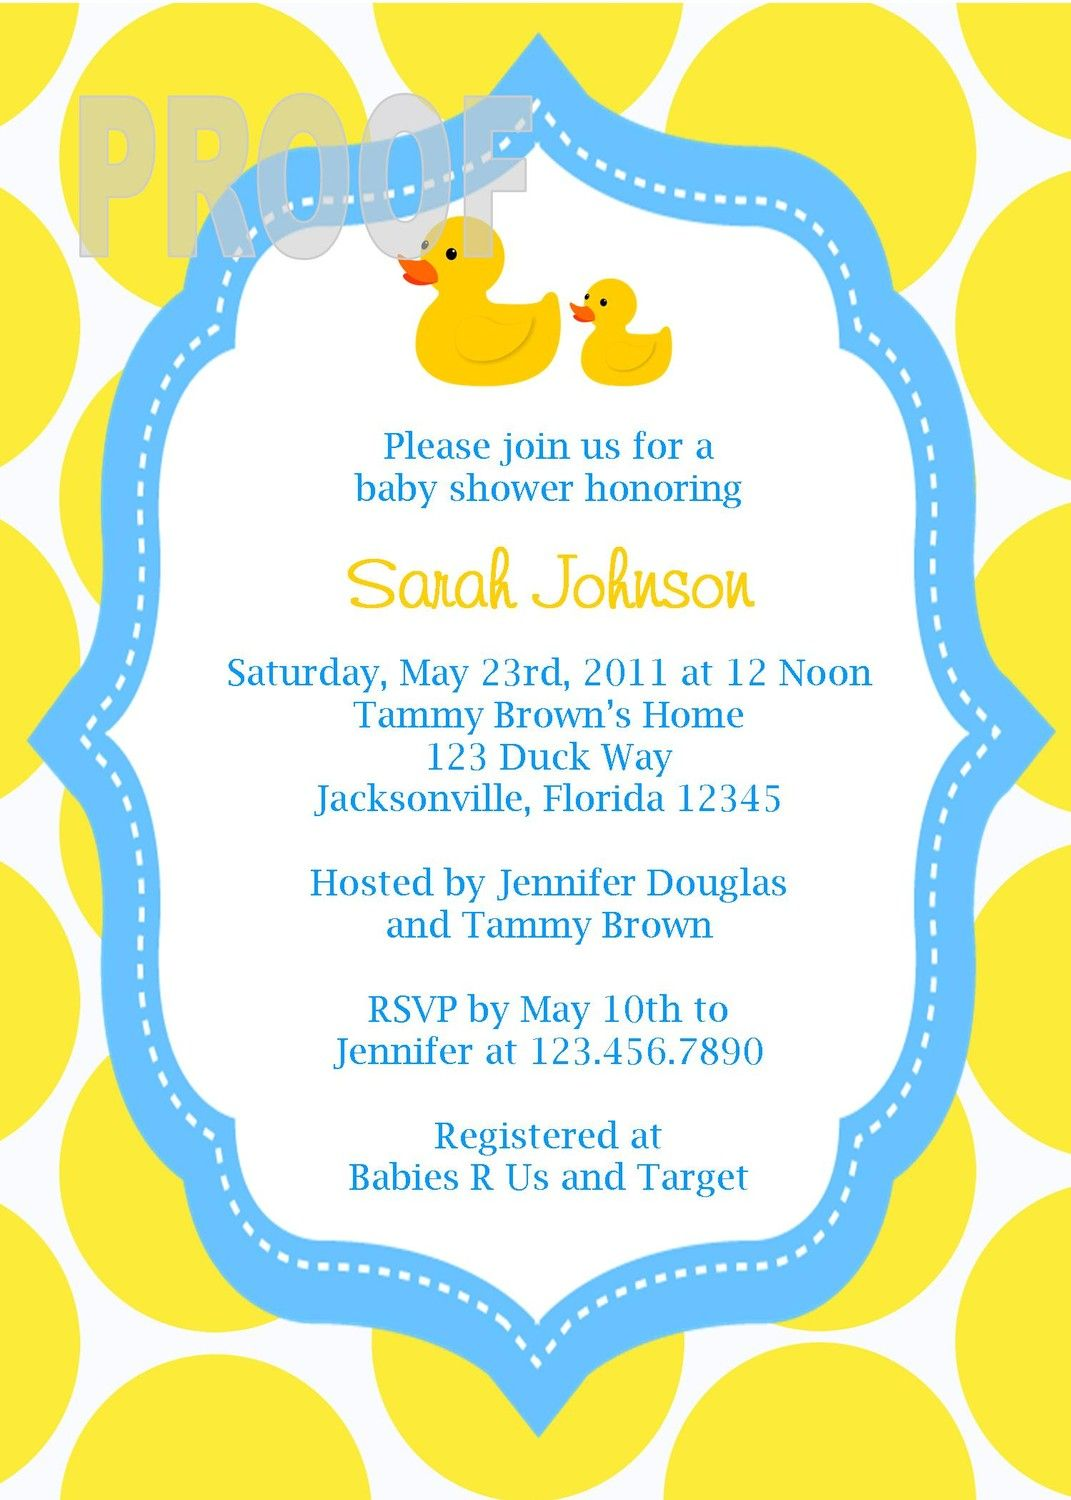 Adorable Rubber Ducky Custom Baby Shower Invitation | Baby Shower ...